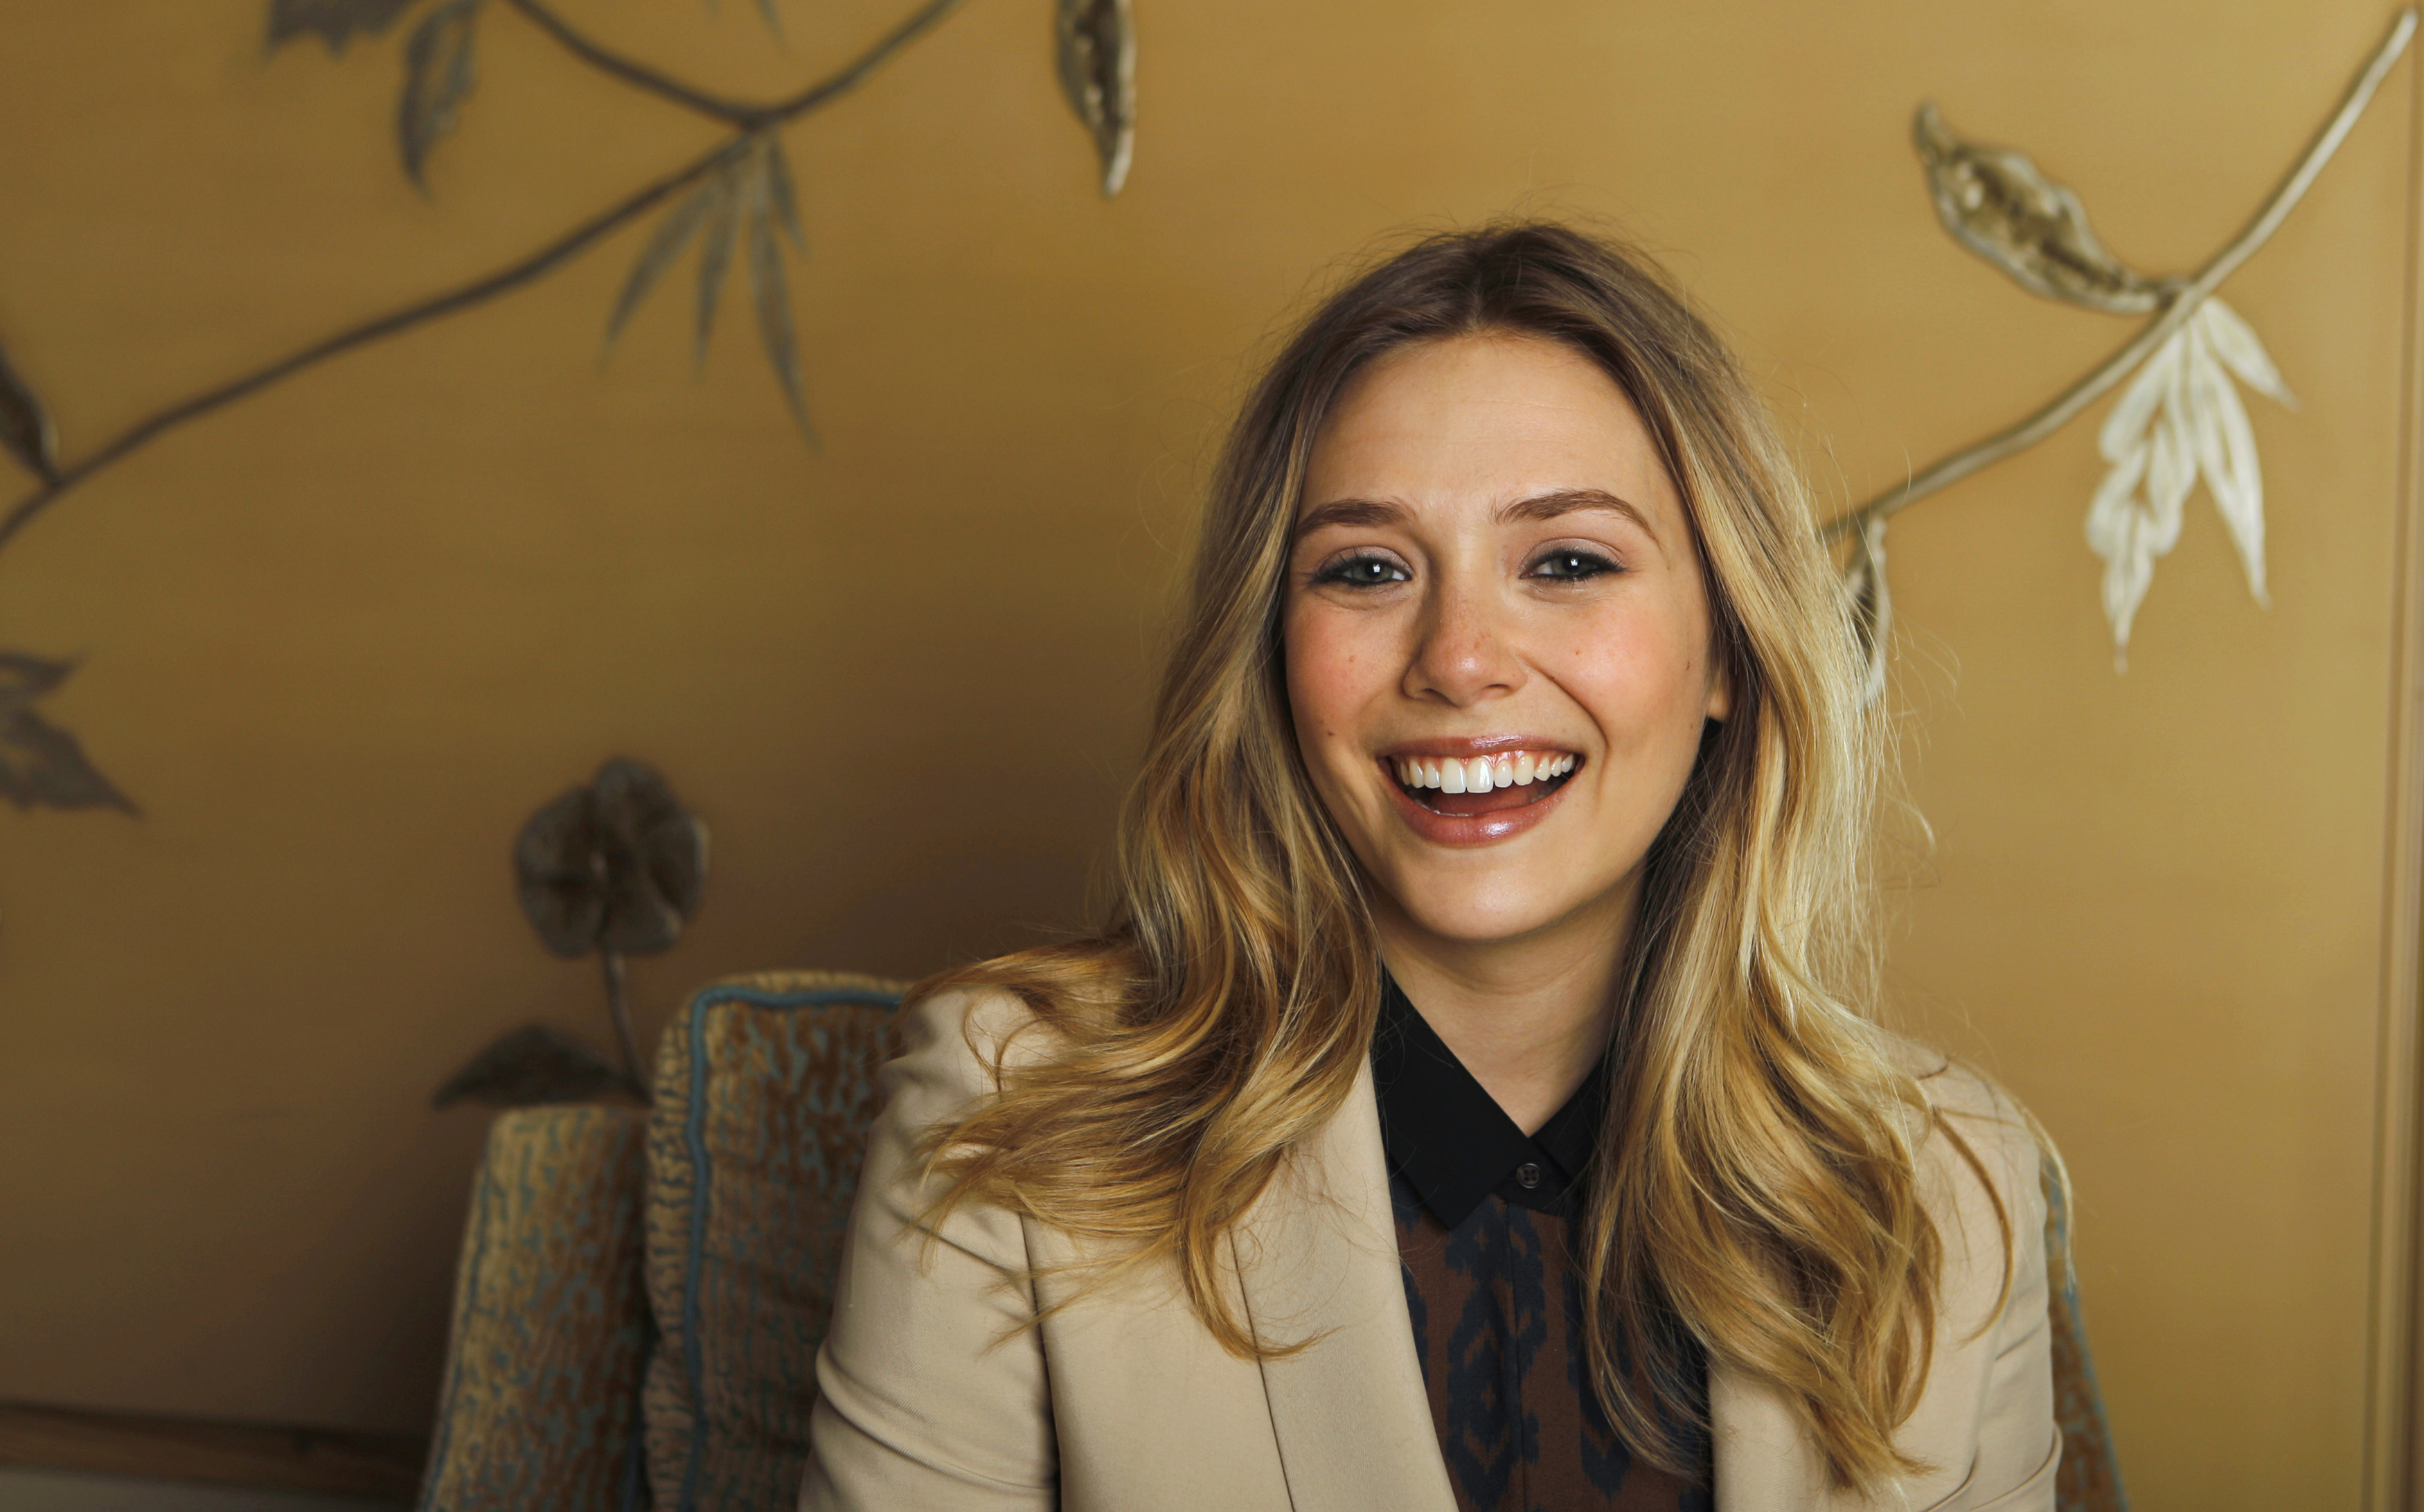 Elizabeth Olsen Wallpapers Pictures Images 3500x2183